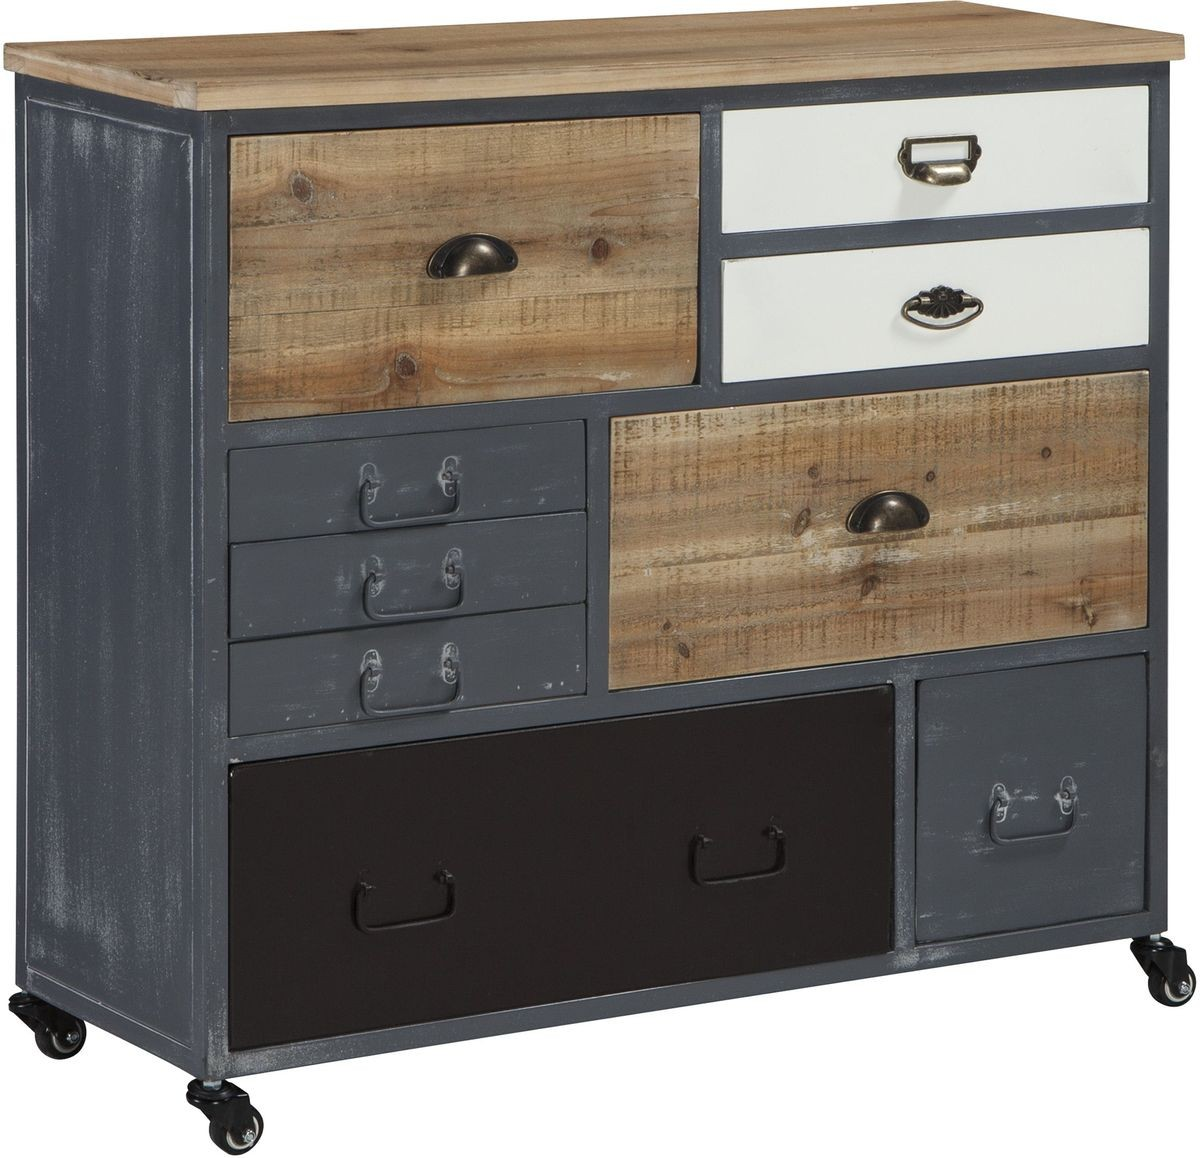 work tool gerstner console accent corner decorative cabinets freedom roller international fantas closet modern century and trunks professional dresser bedroom sears drawers